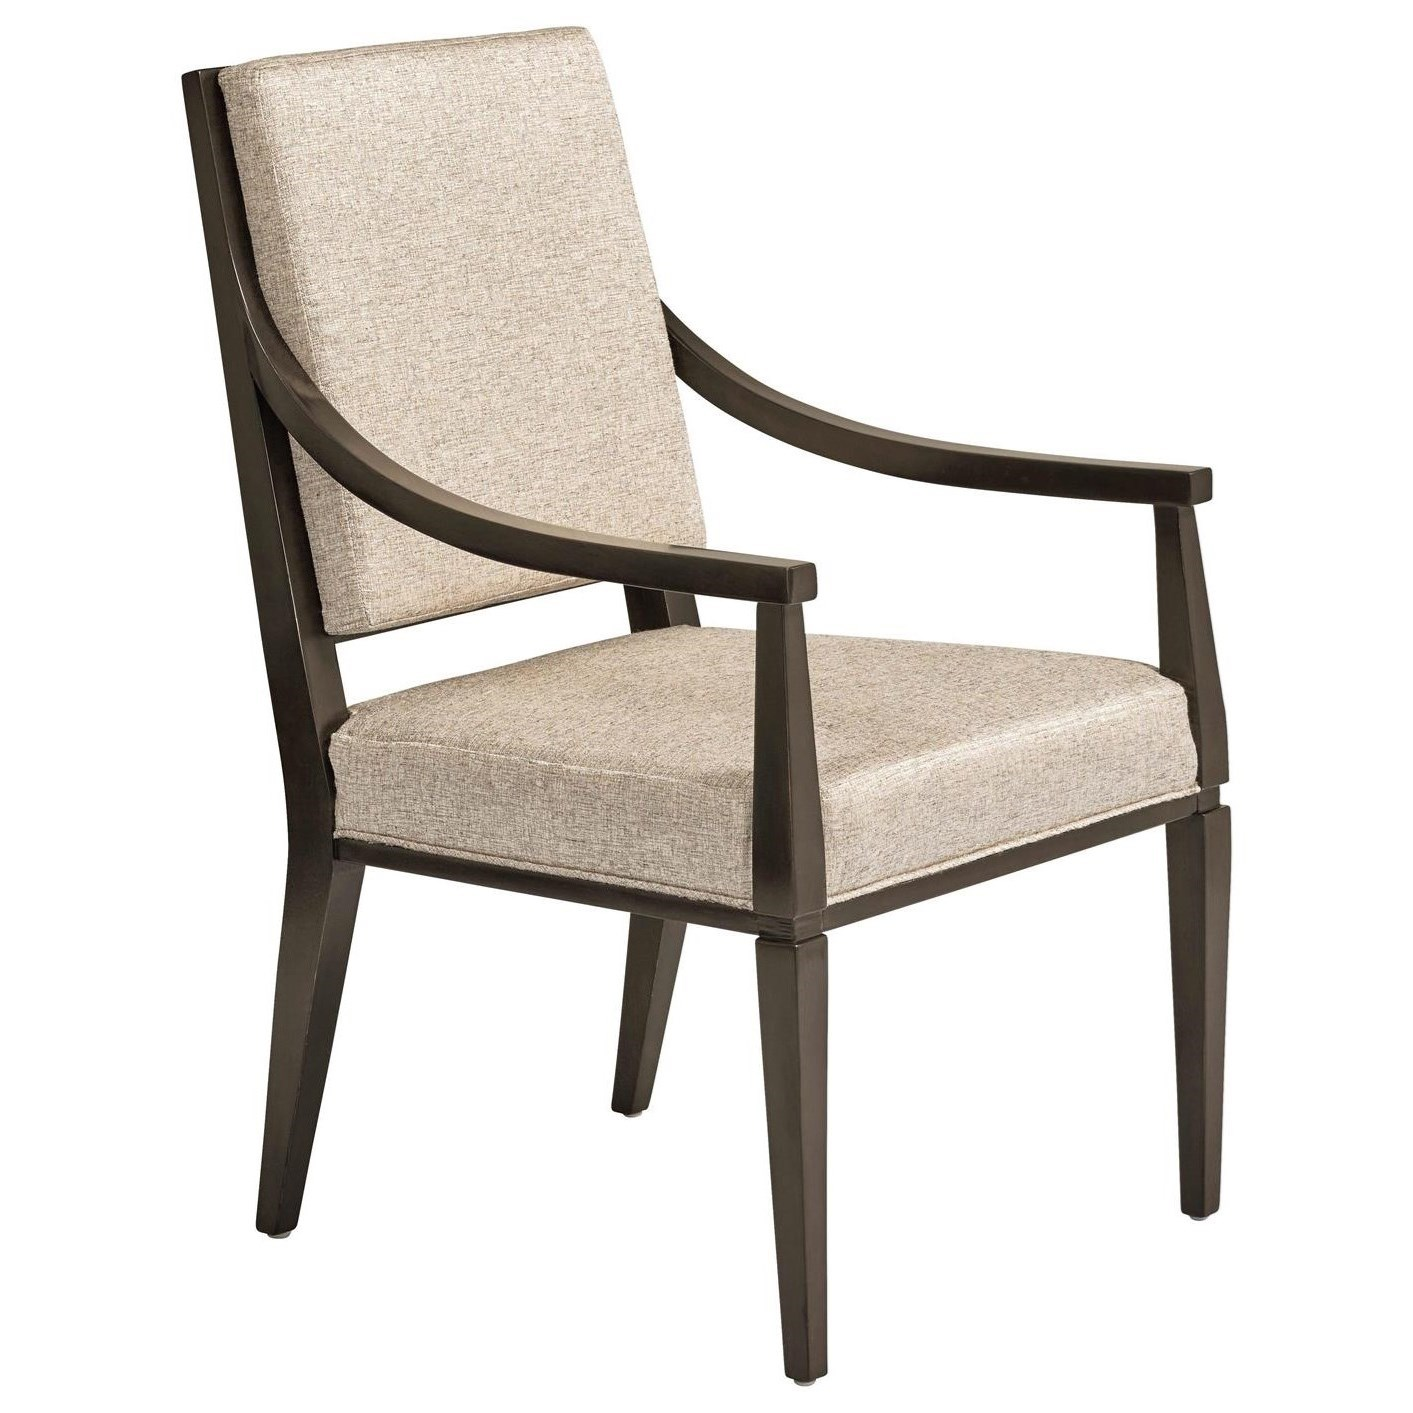 Fine Furniture Design Deco 1680-821 Spirales Upholstered